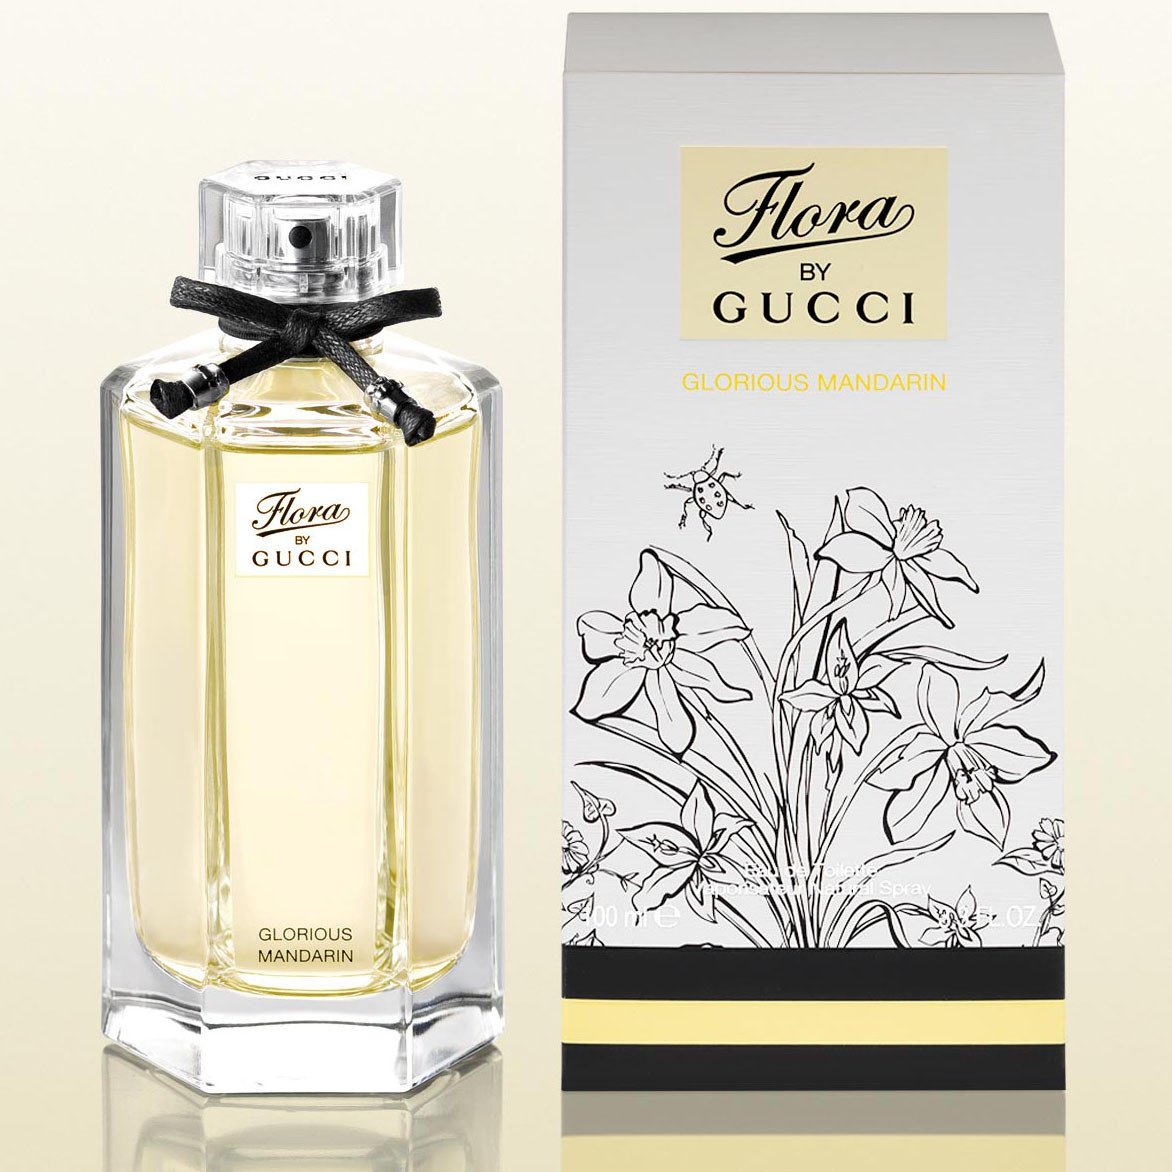 Gucci Flora by Gucci Glorious Mandarin туалетная вода 100 ml. (Гуччи Флора  Бай Гуччи 57f3e78205592